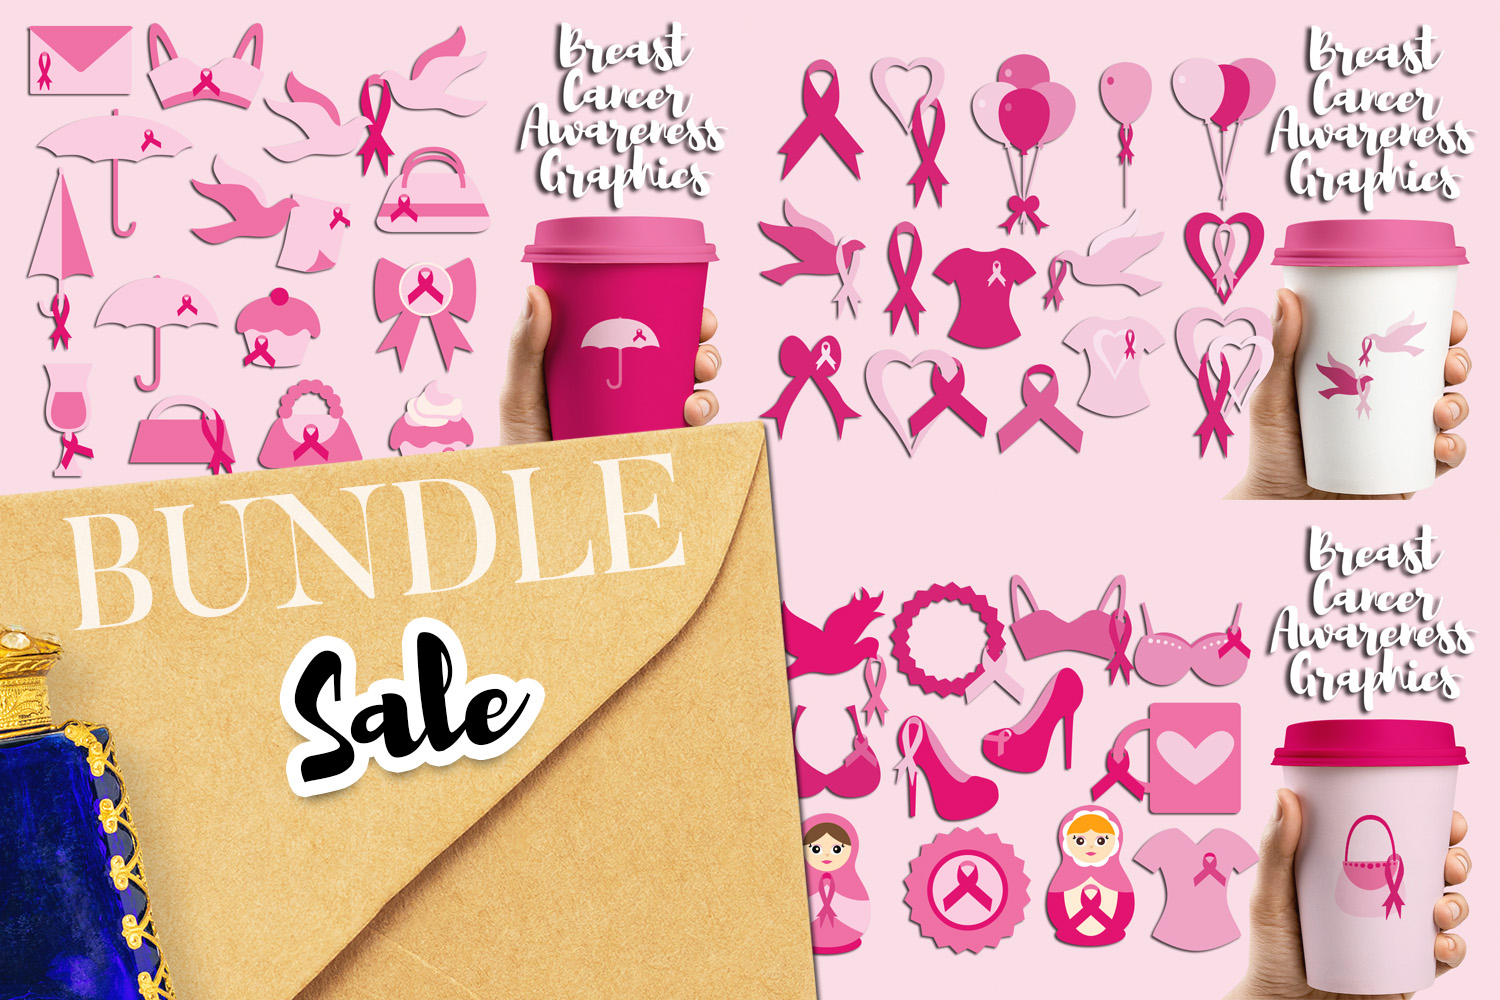 Download Free Pink Ribbon Day Bundle Graphic By Revidevi Creative Fabrica for Cricut Explore, Silhouette and other cutting machines.